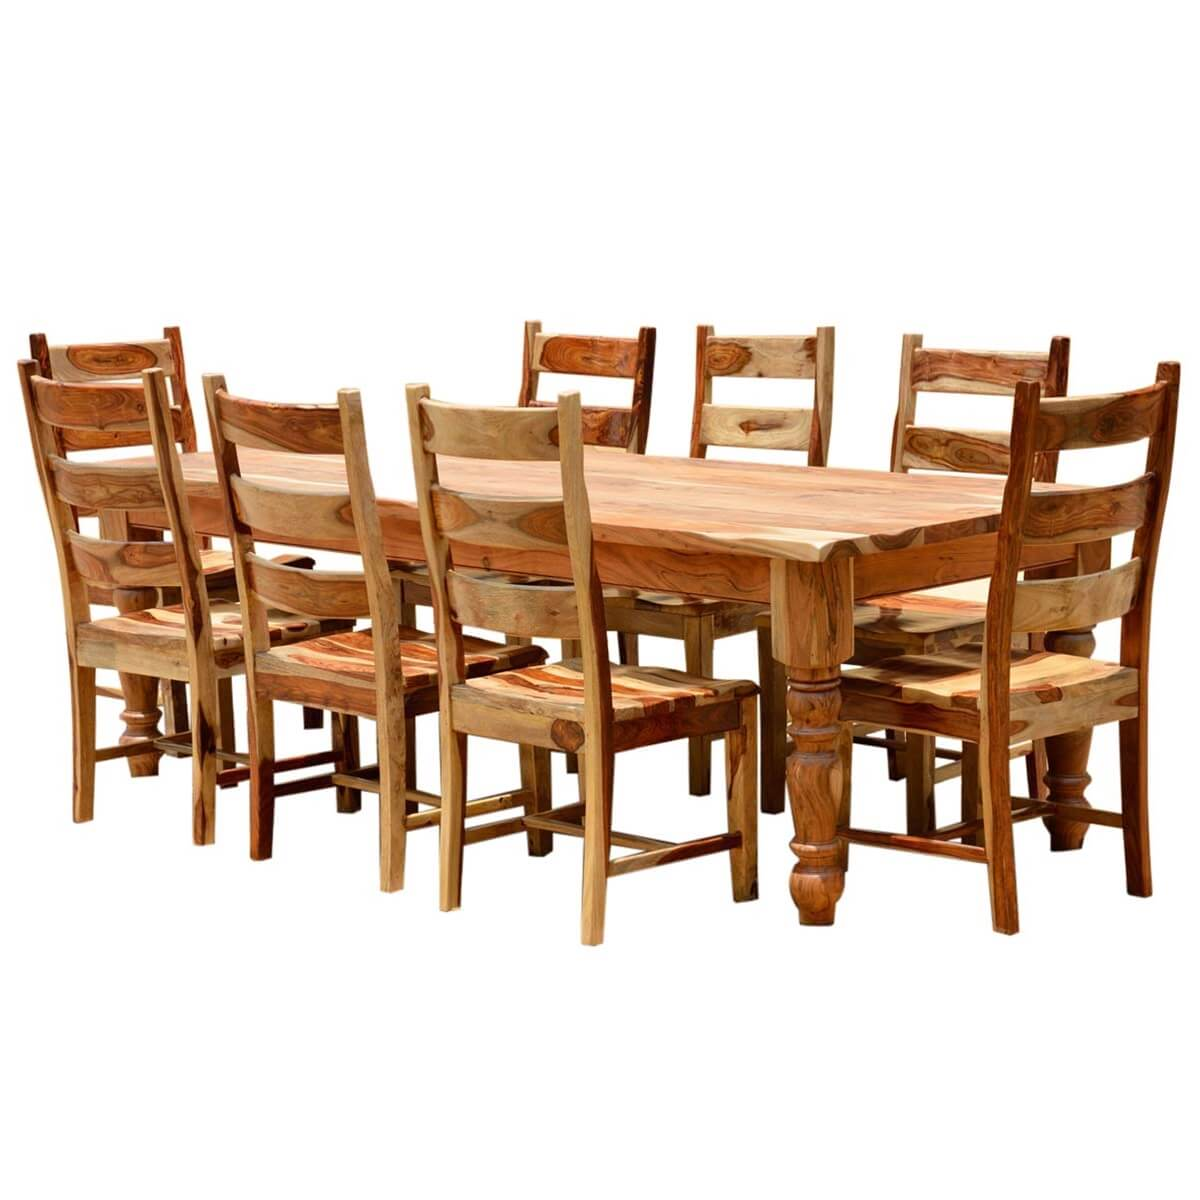 Rustic Solid Wood Farmhouse Dining Room Table Chair Set : 43592 from www.sierralivingconcepts.com size 1200 x 1200 jpeg 407kB